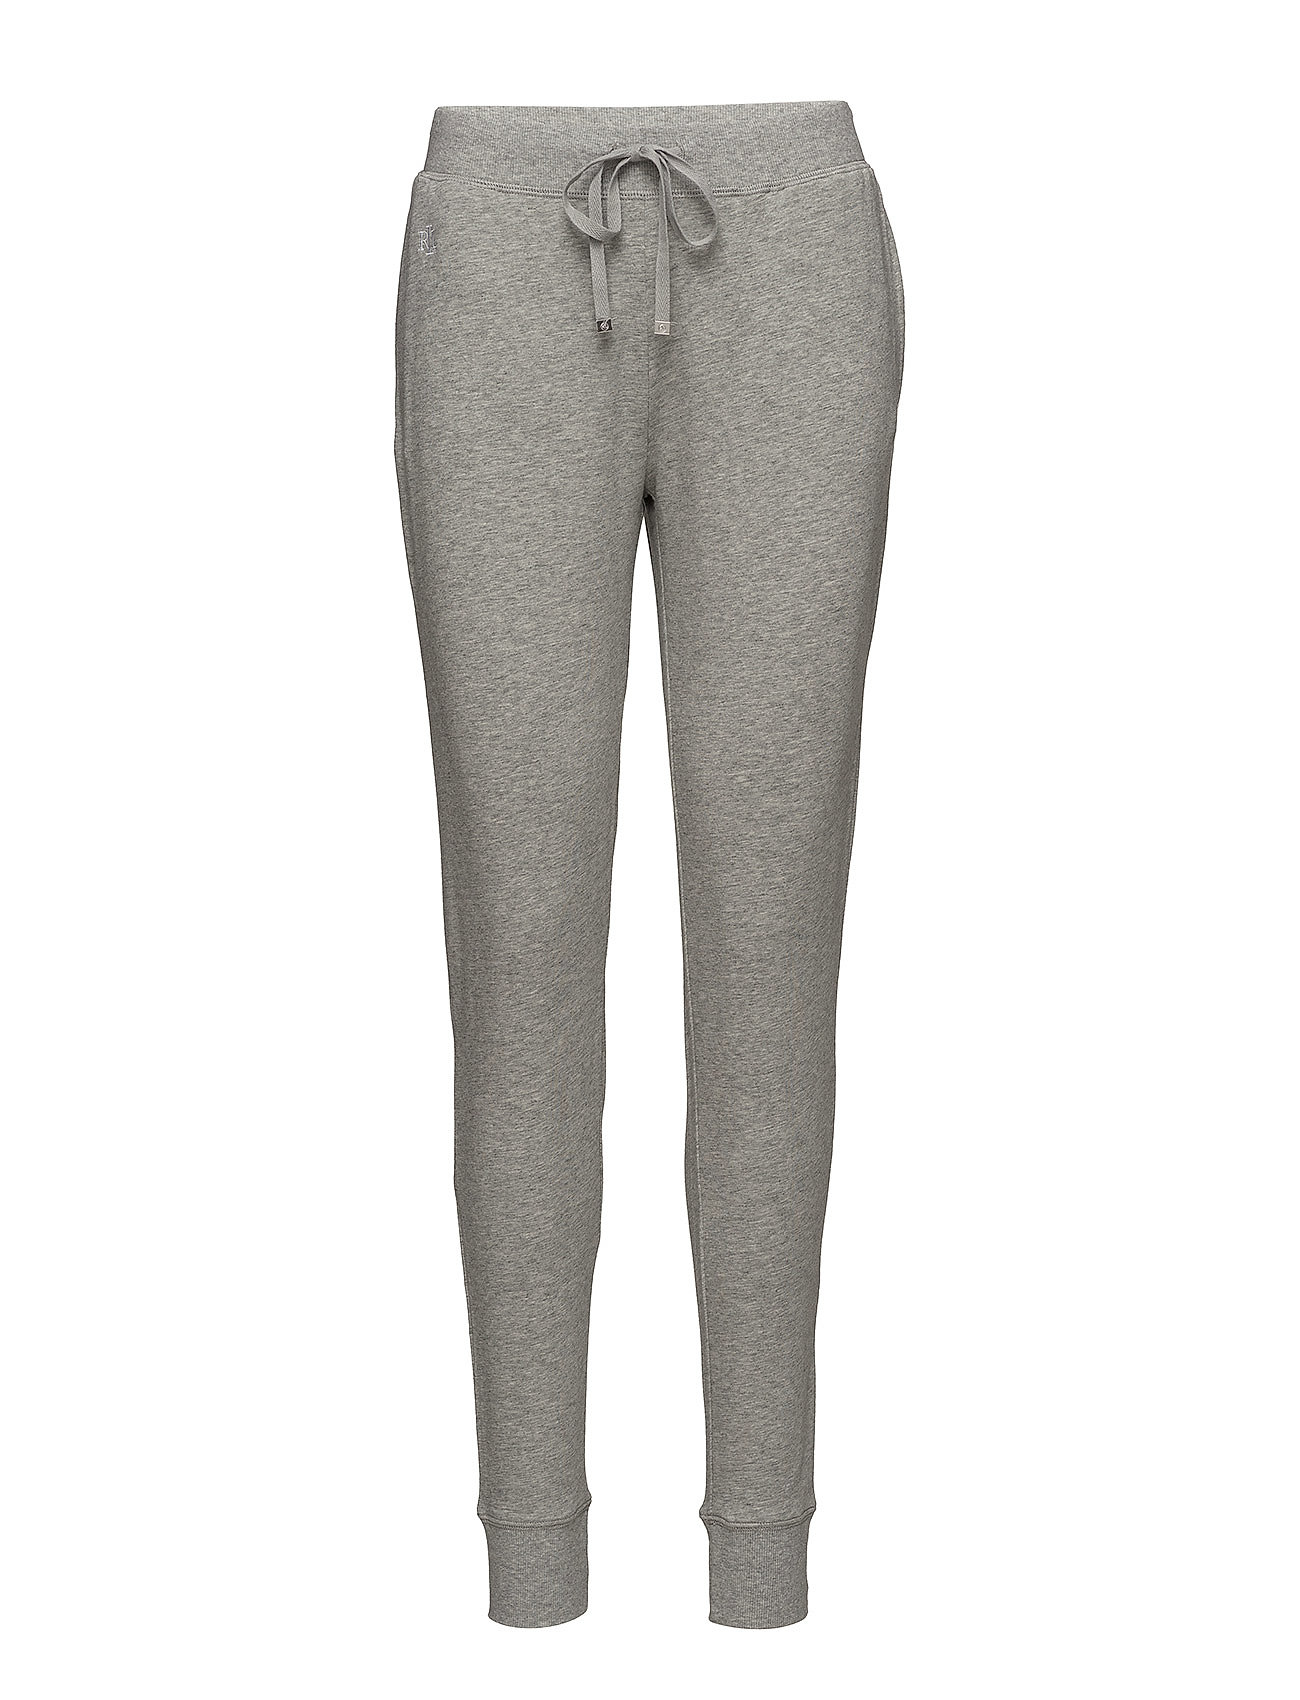 Image of Lrl French Terry Drawstring Pant (3005908329)